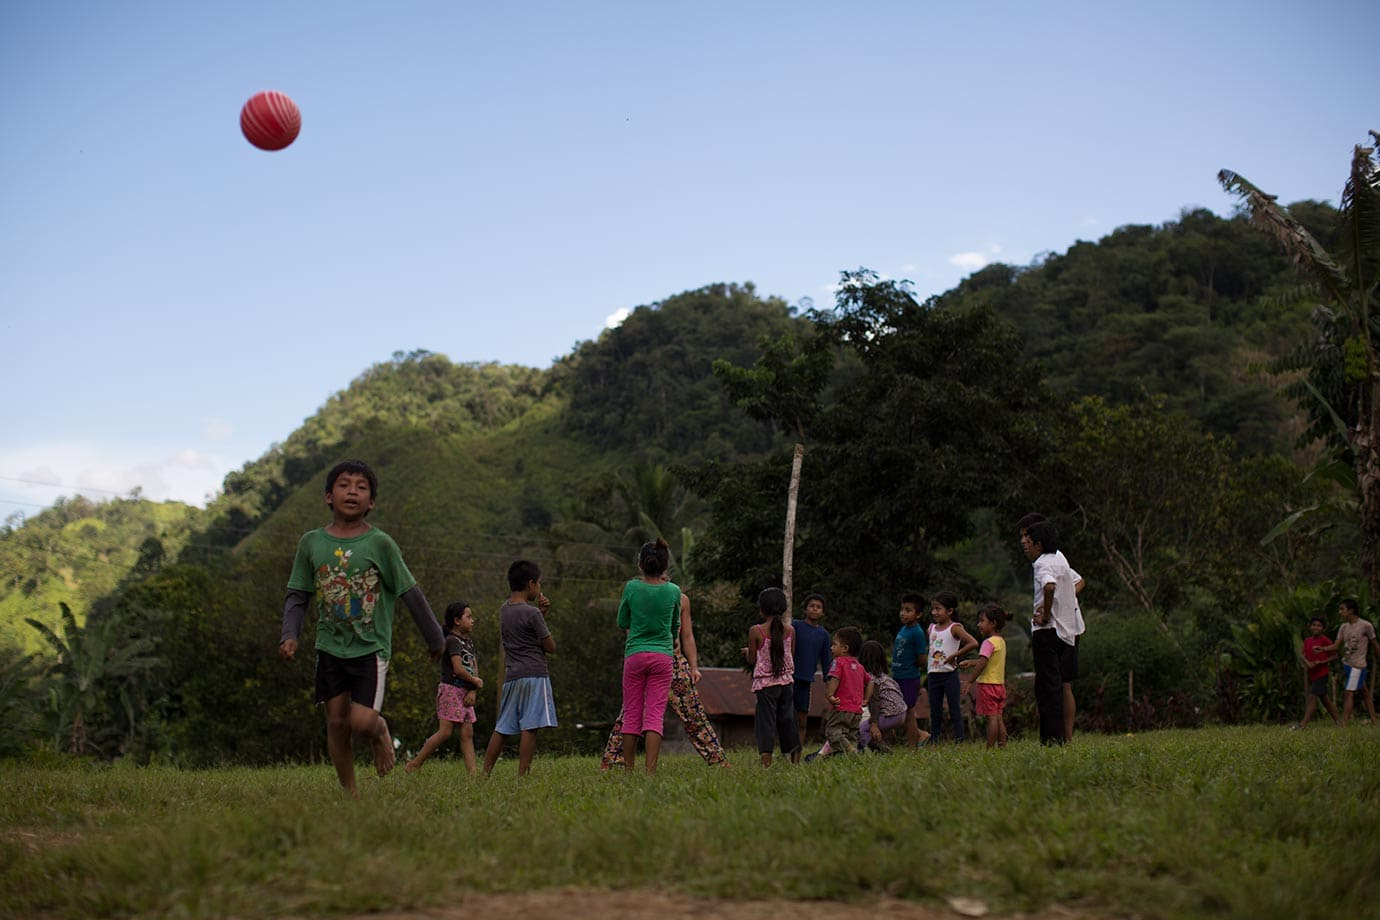 Playing ball with the local kids in Balbatzul